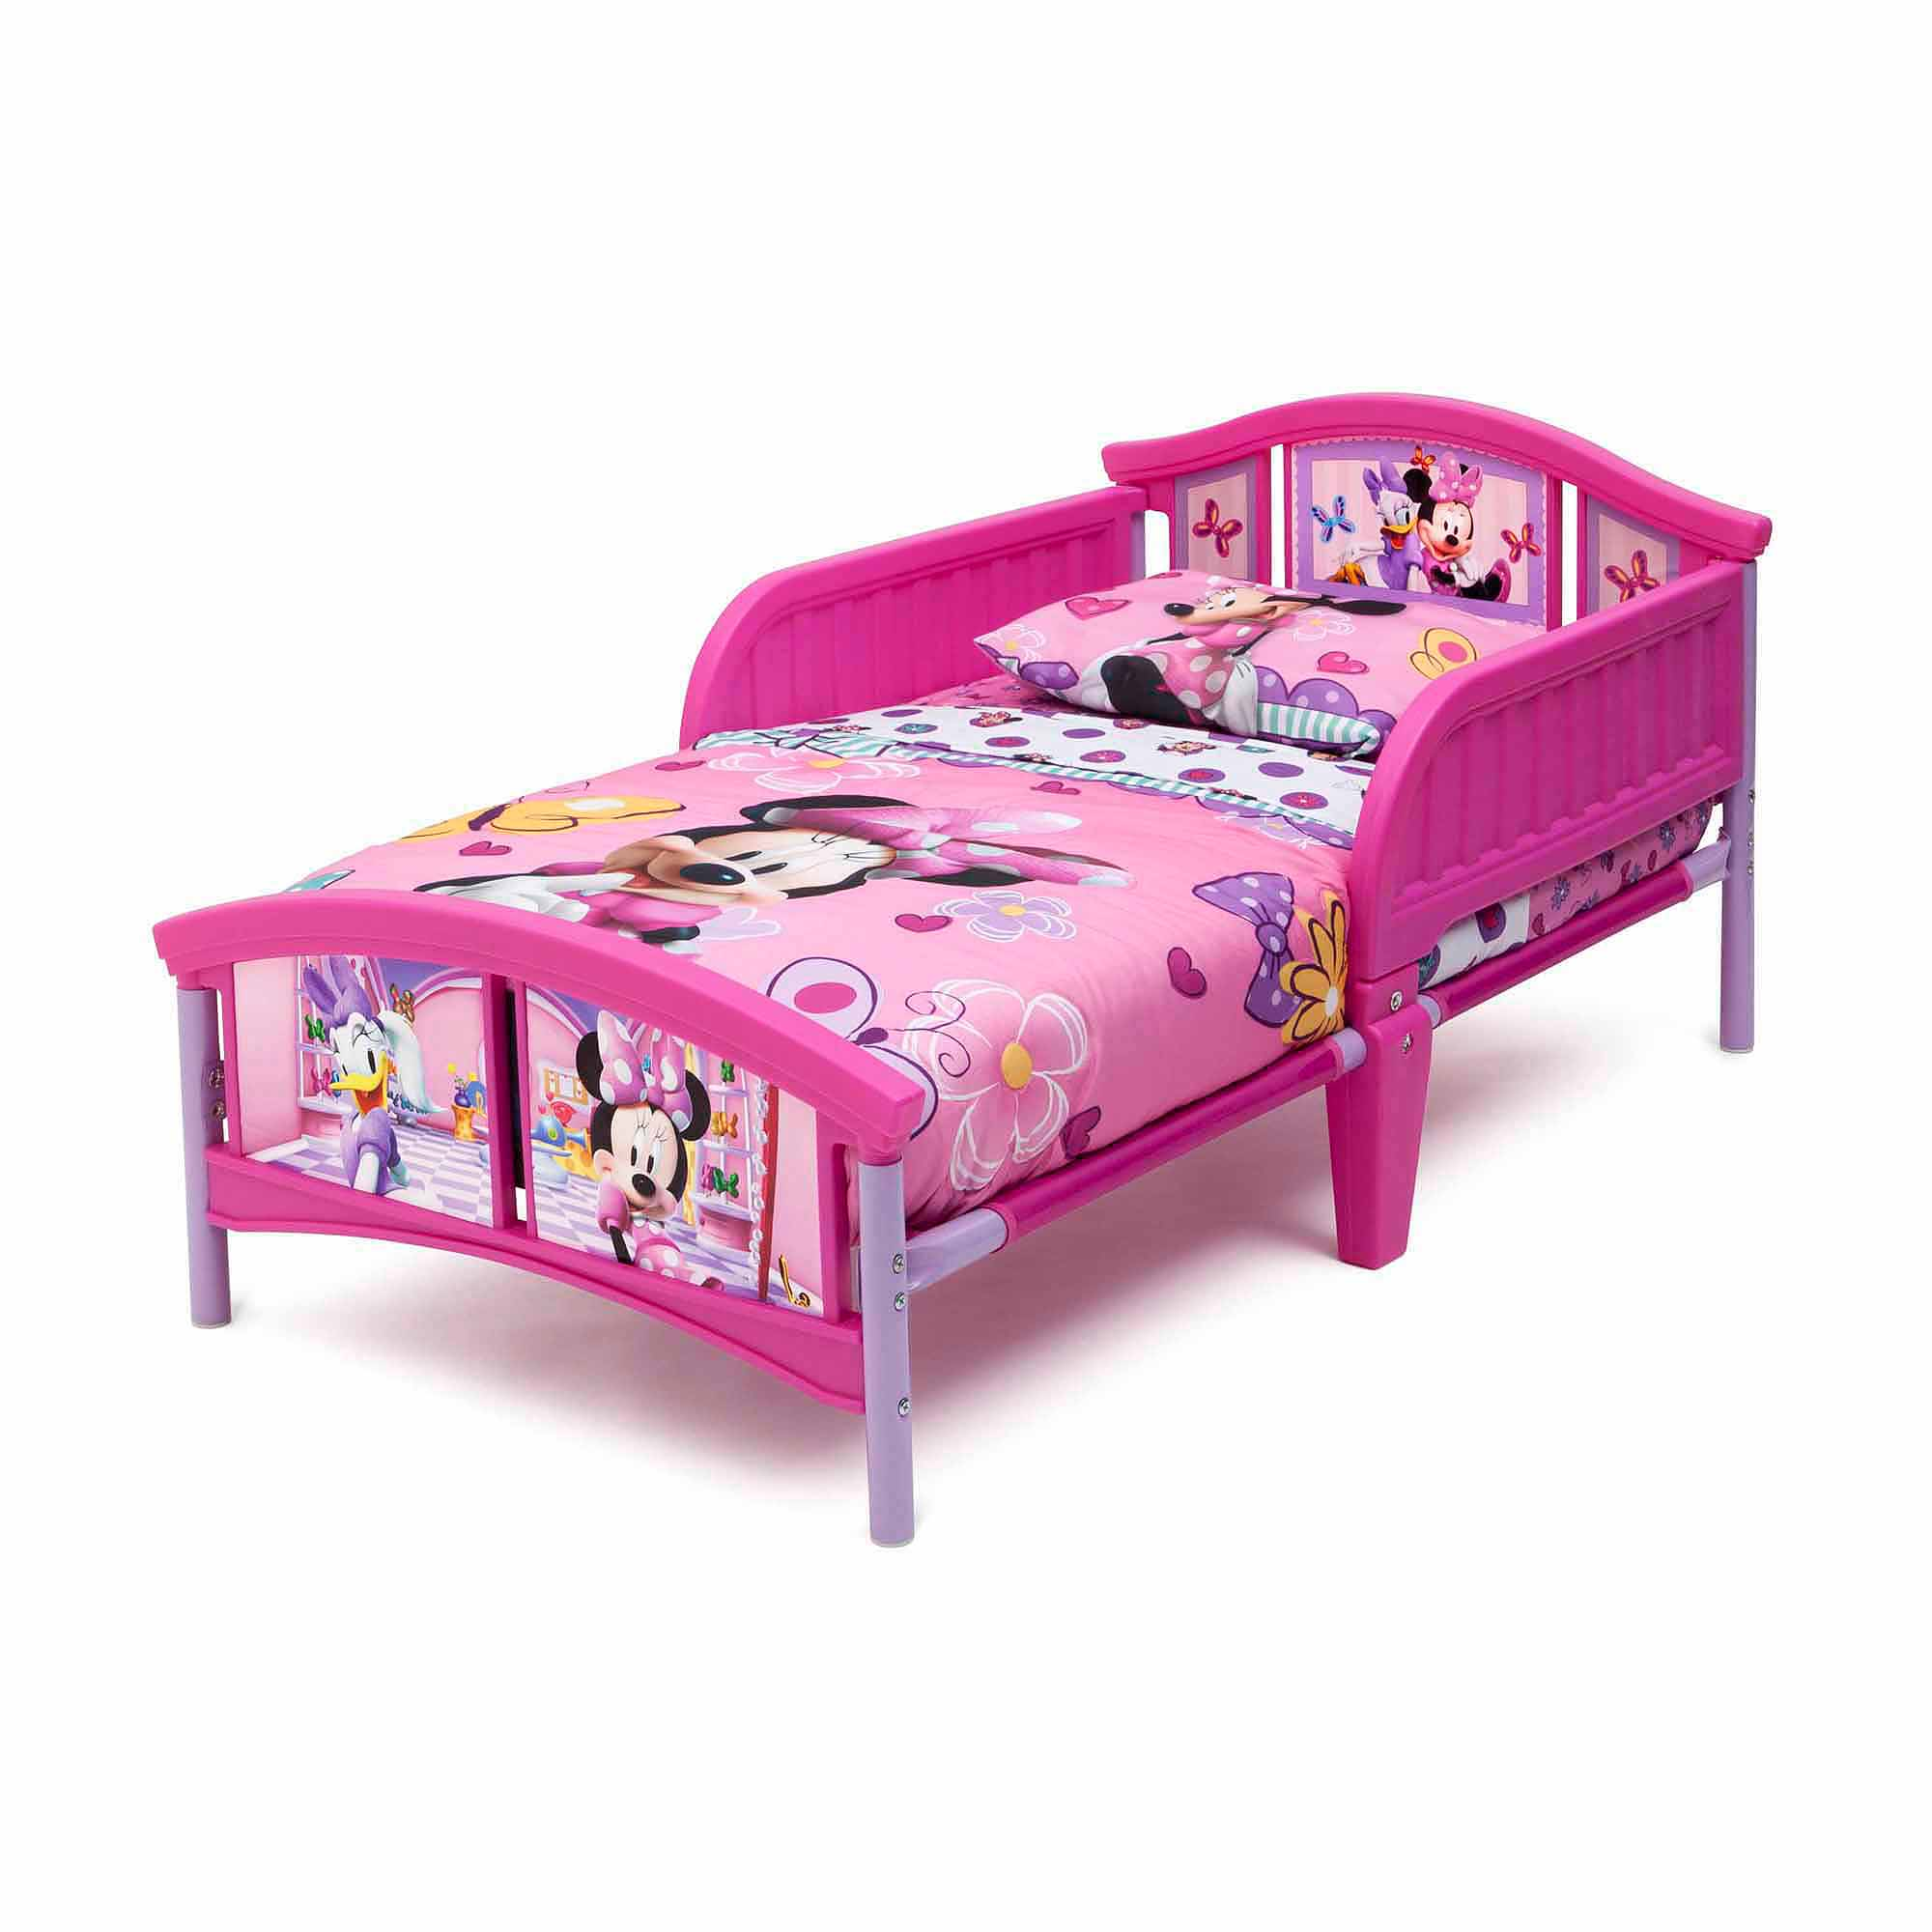 Disney Minnie Mouse Plastic Toddler Bed